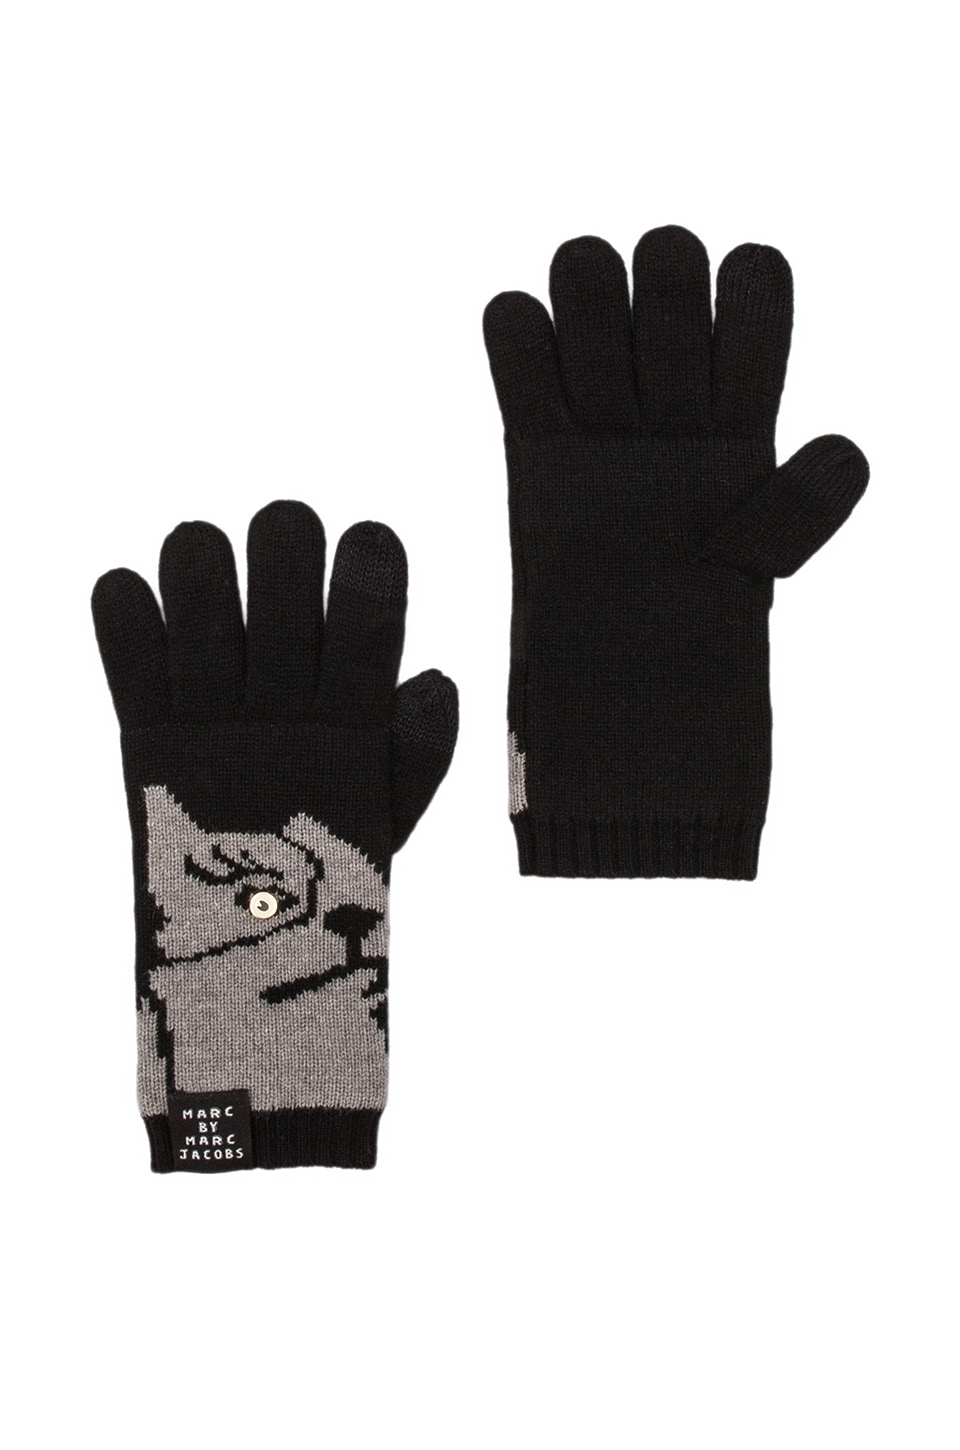 Marc by Marc Jacobs Olive Gloves in Black Multi